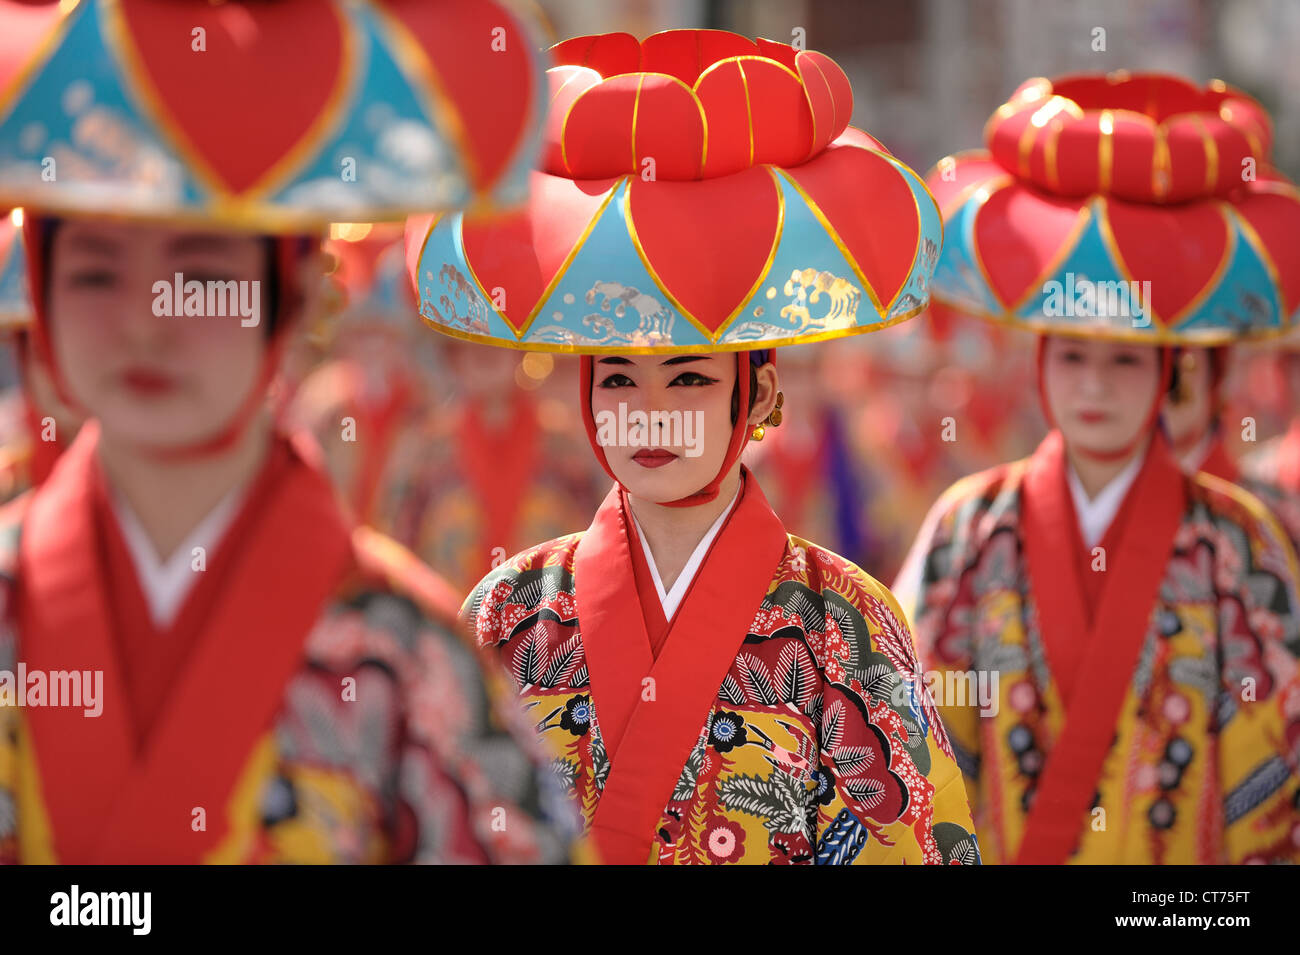 Dance performers make their way to the next location where they will perform during a local festival in Okinawa, - Stock Image